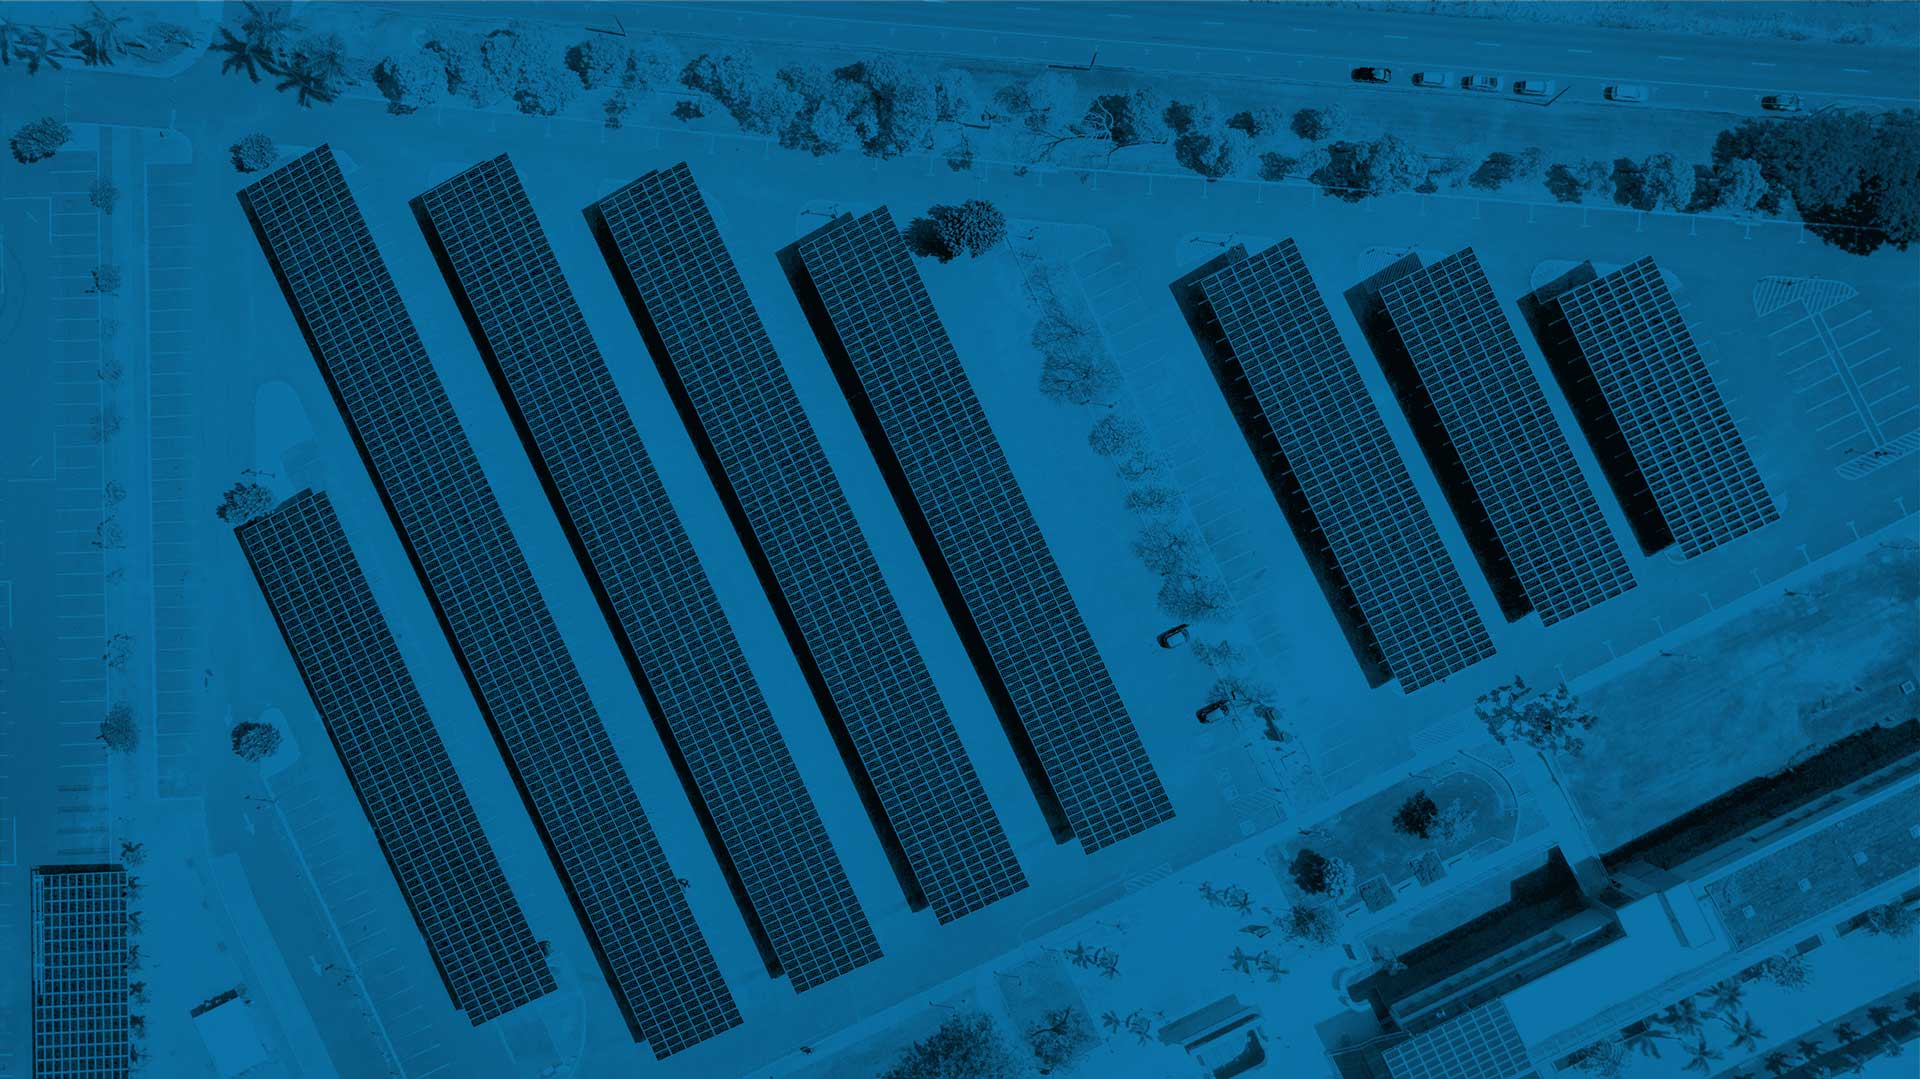 Why Distributed Energy Resources Provide More Resiliency Than Centralized Power Generation